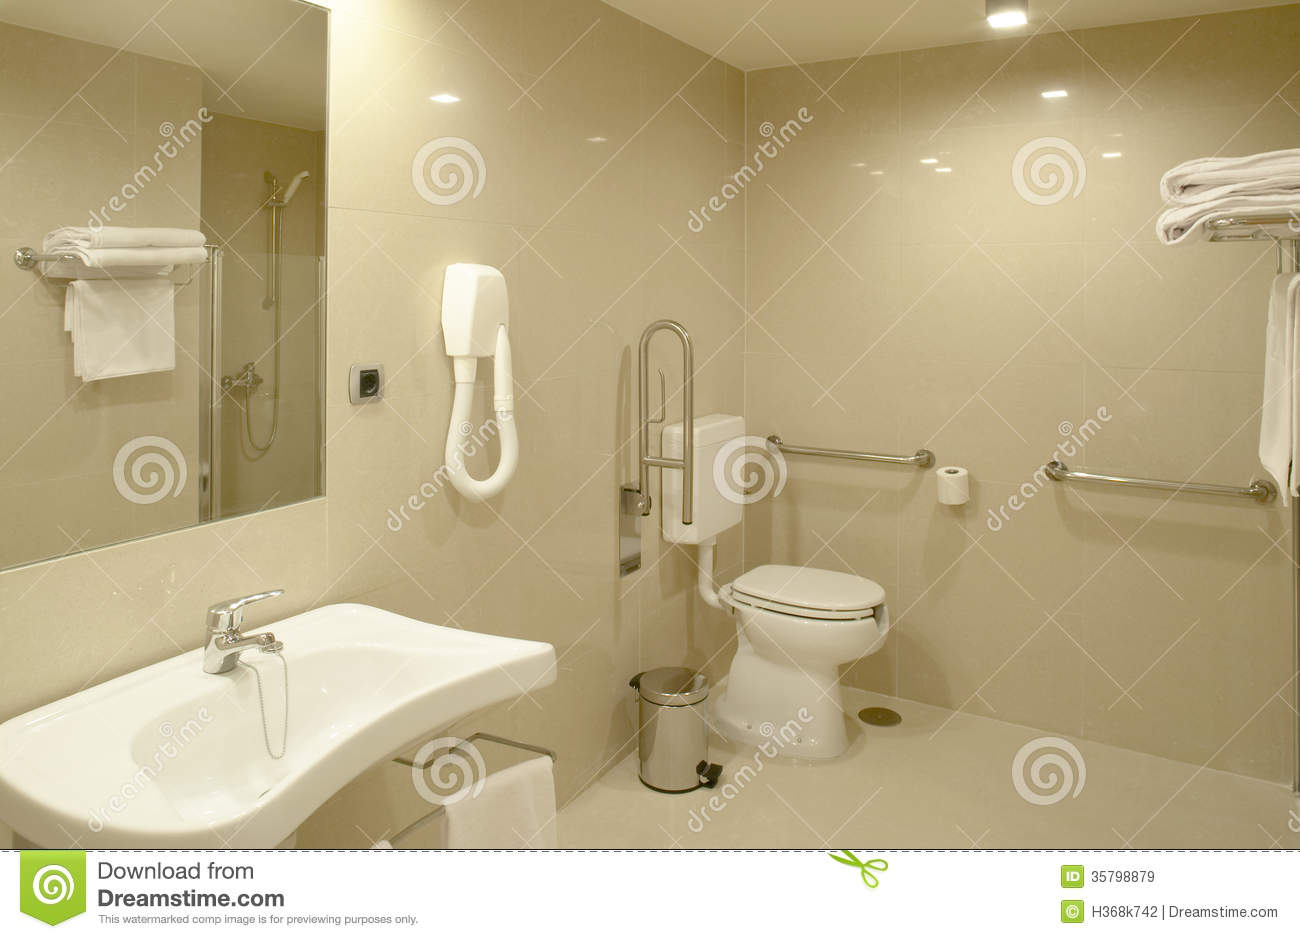 Hospital Bathroom Stock Photos  Images    Pictures   487 Images Bathroom at modern Hospital room Royalty Free Stock Images. Hospital Bathroom. Home Design Ideas